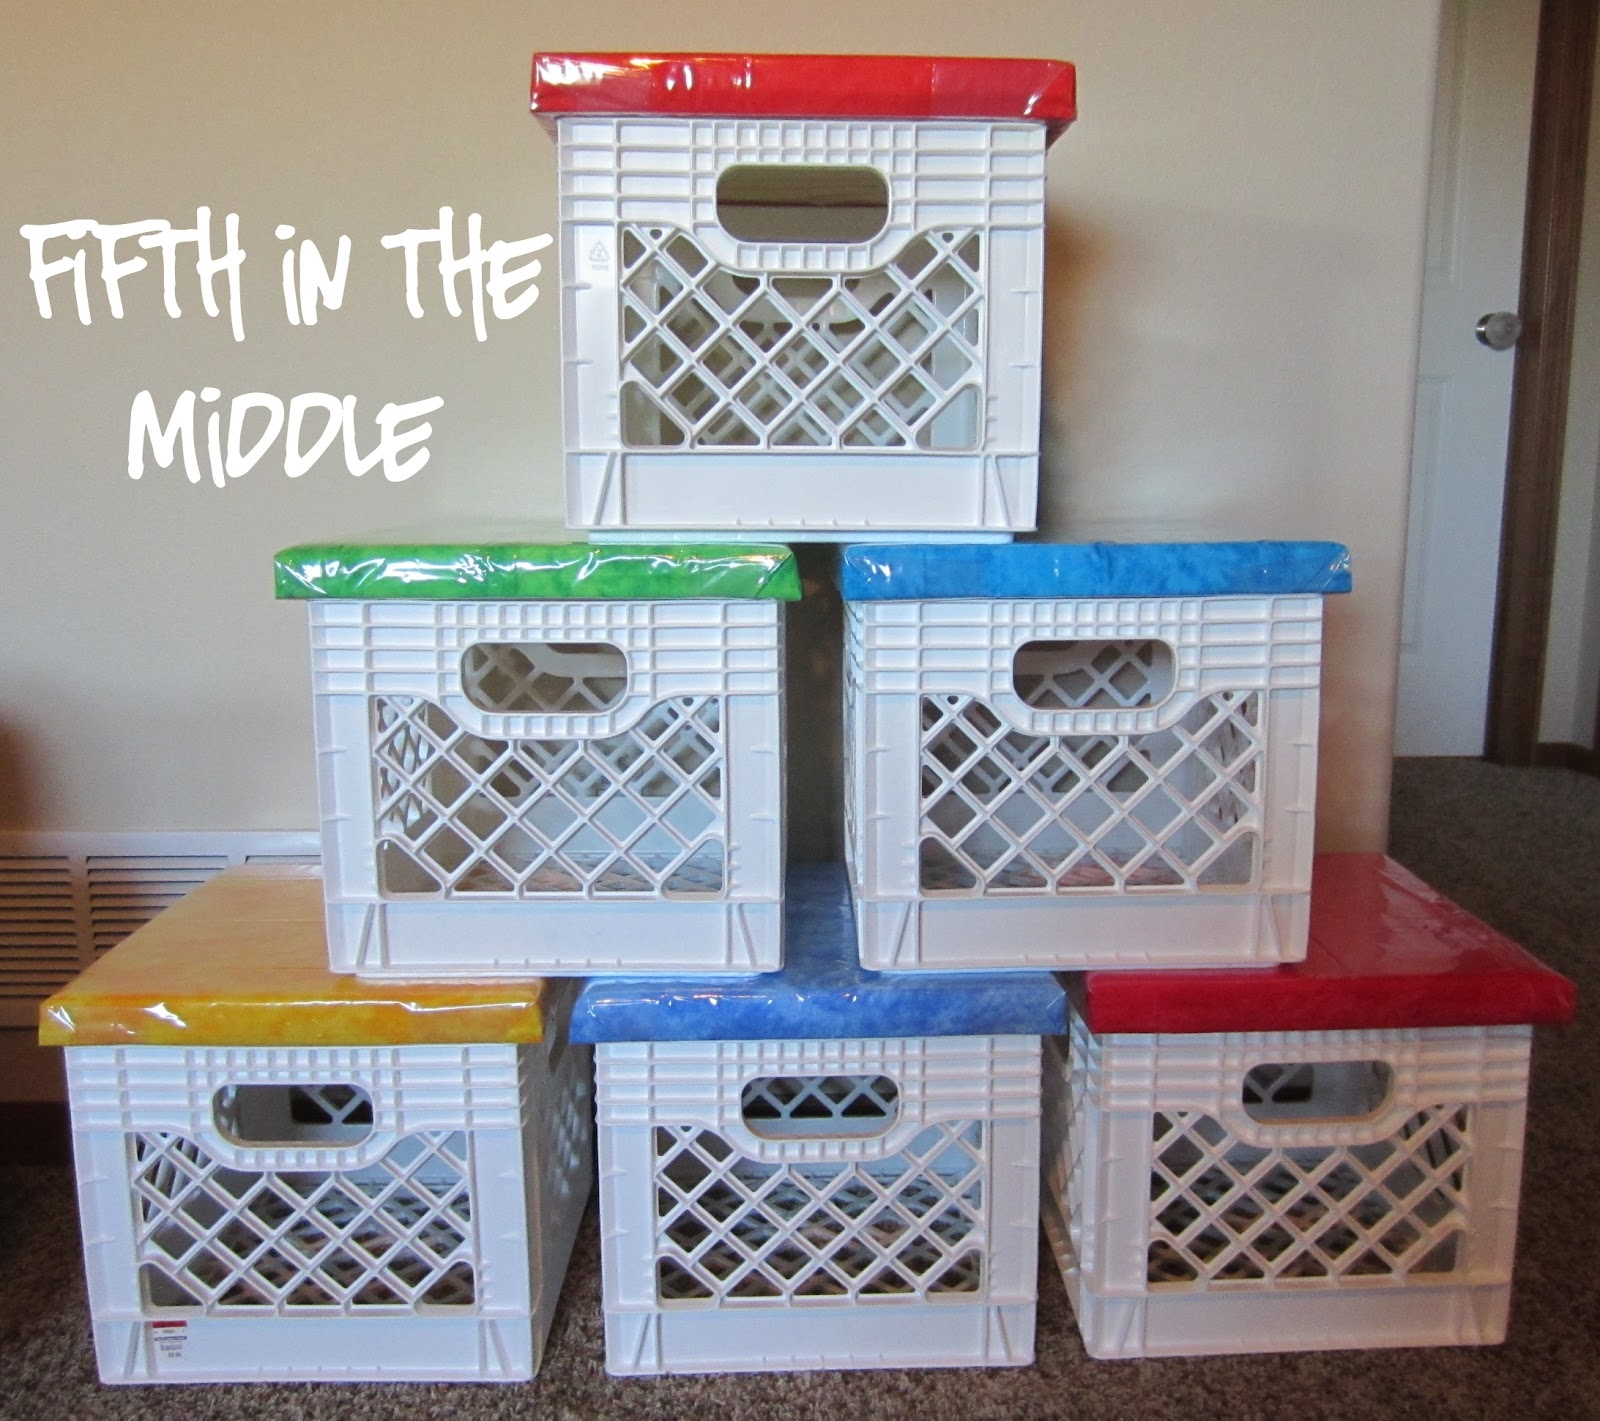 Incroyable Milk Crate Seats Provide Alternate Seating And More Storage Space.